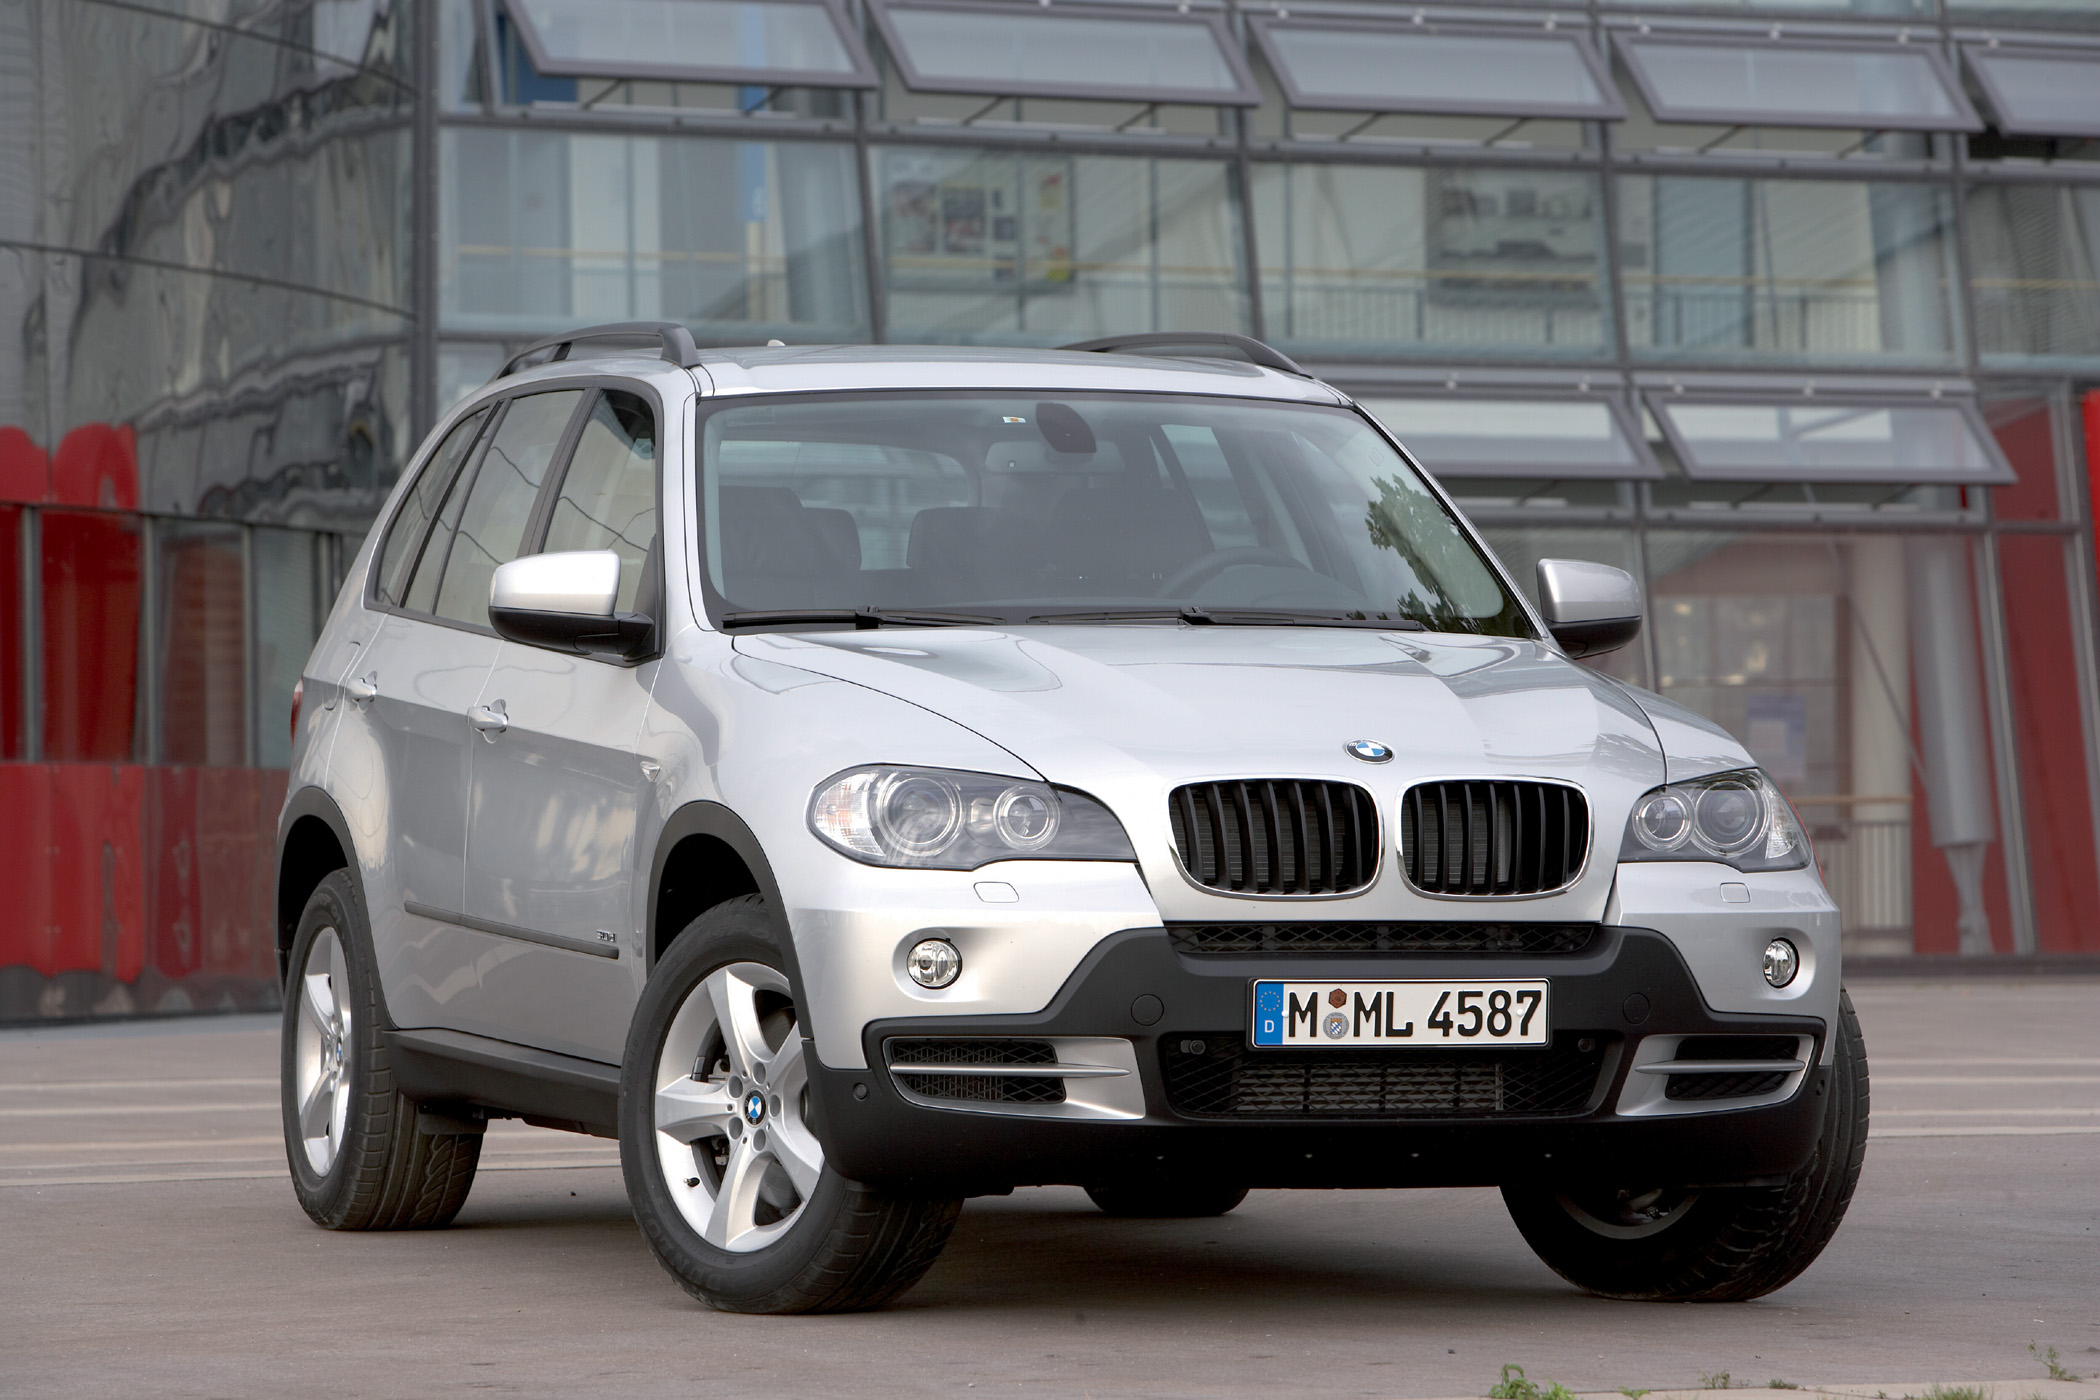 chariot of the gods the new diesel bmw x5 xdrive 35d new on wheels groovecar. Black Bedroom Furniture Sets. Home Design Ideas